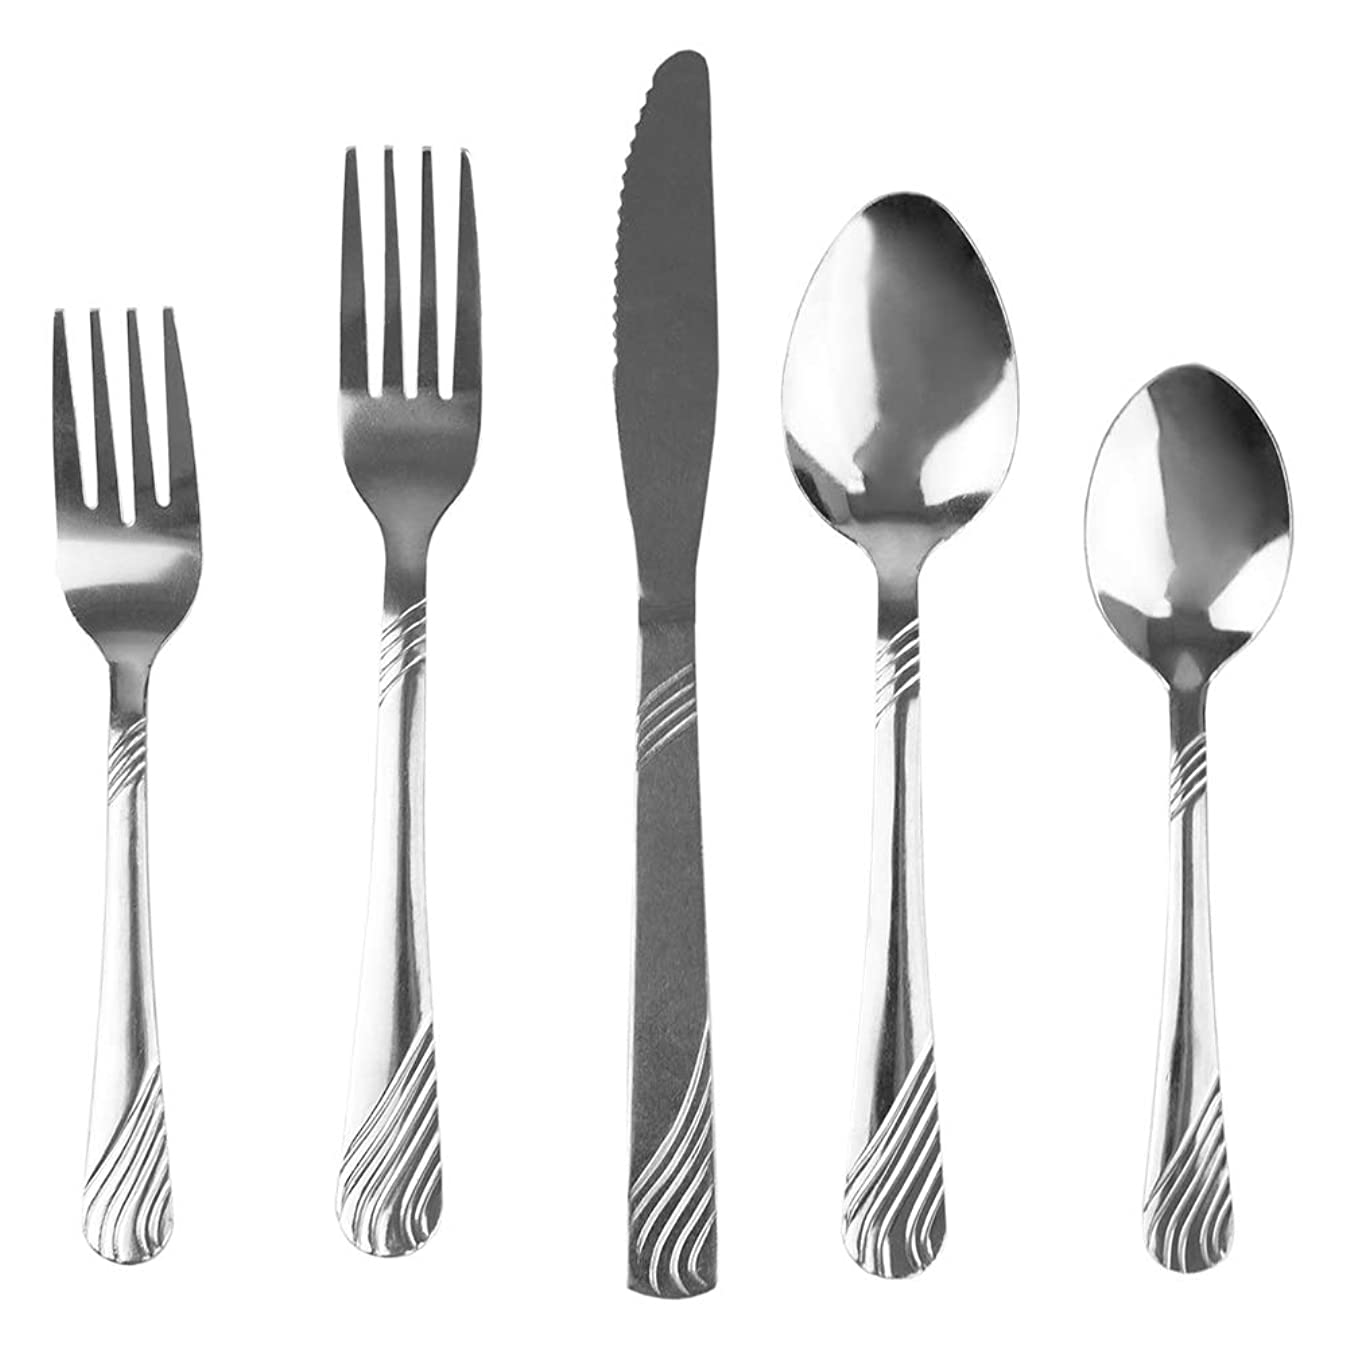 Home Basics FS45237 El River 20 Piece Stainless Steel Silverware Flatware Cutlery Dinner Set, Elegant Mirrored Finish Utensils Service for 4 Includes Knife/Fork, Silver